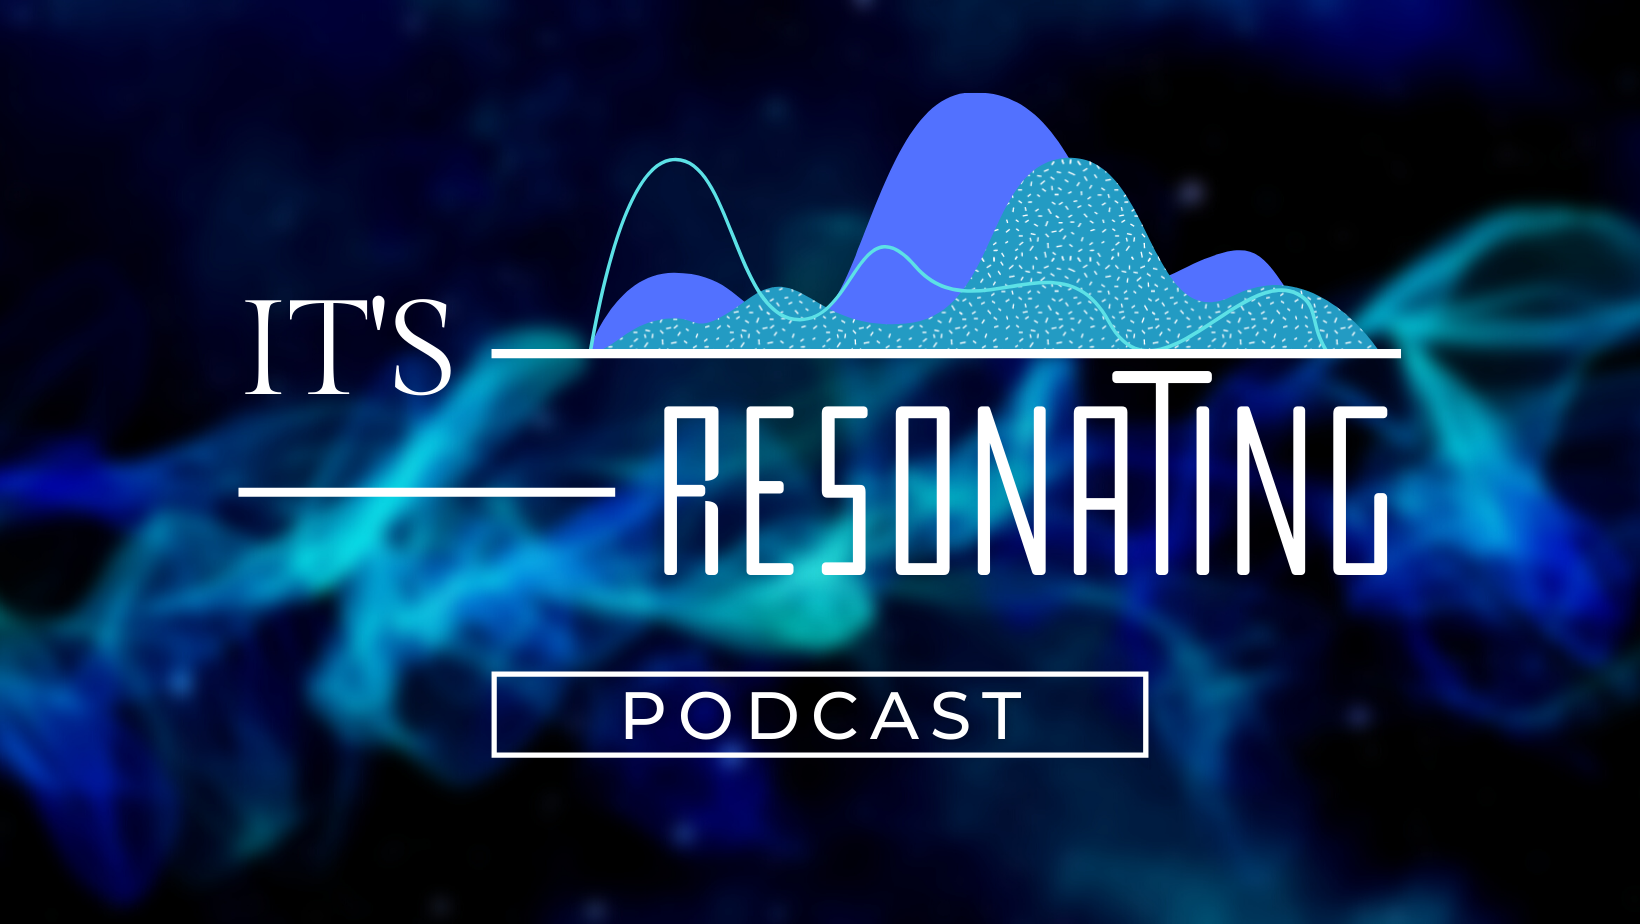 It's Resonating Podcast is Going LIVE